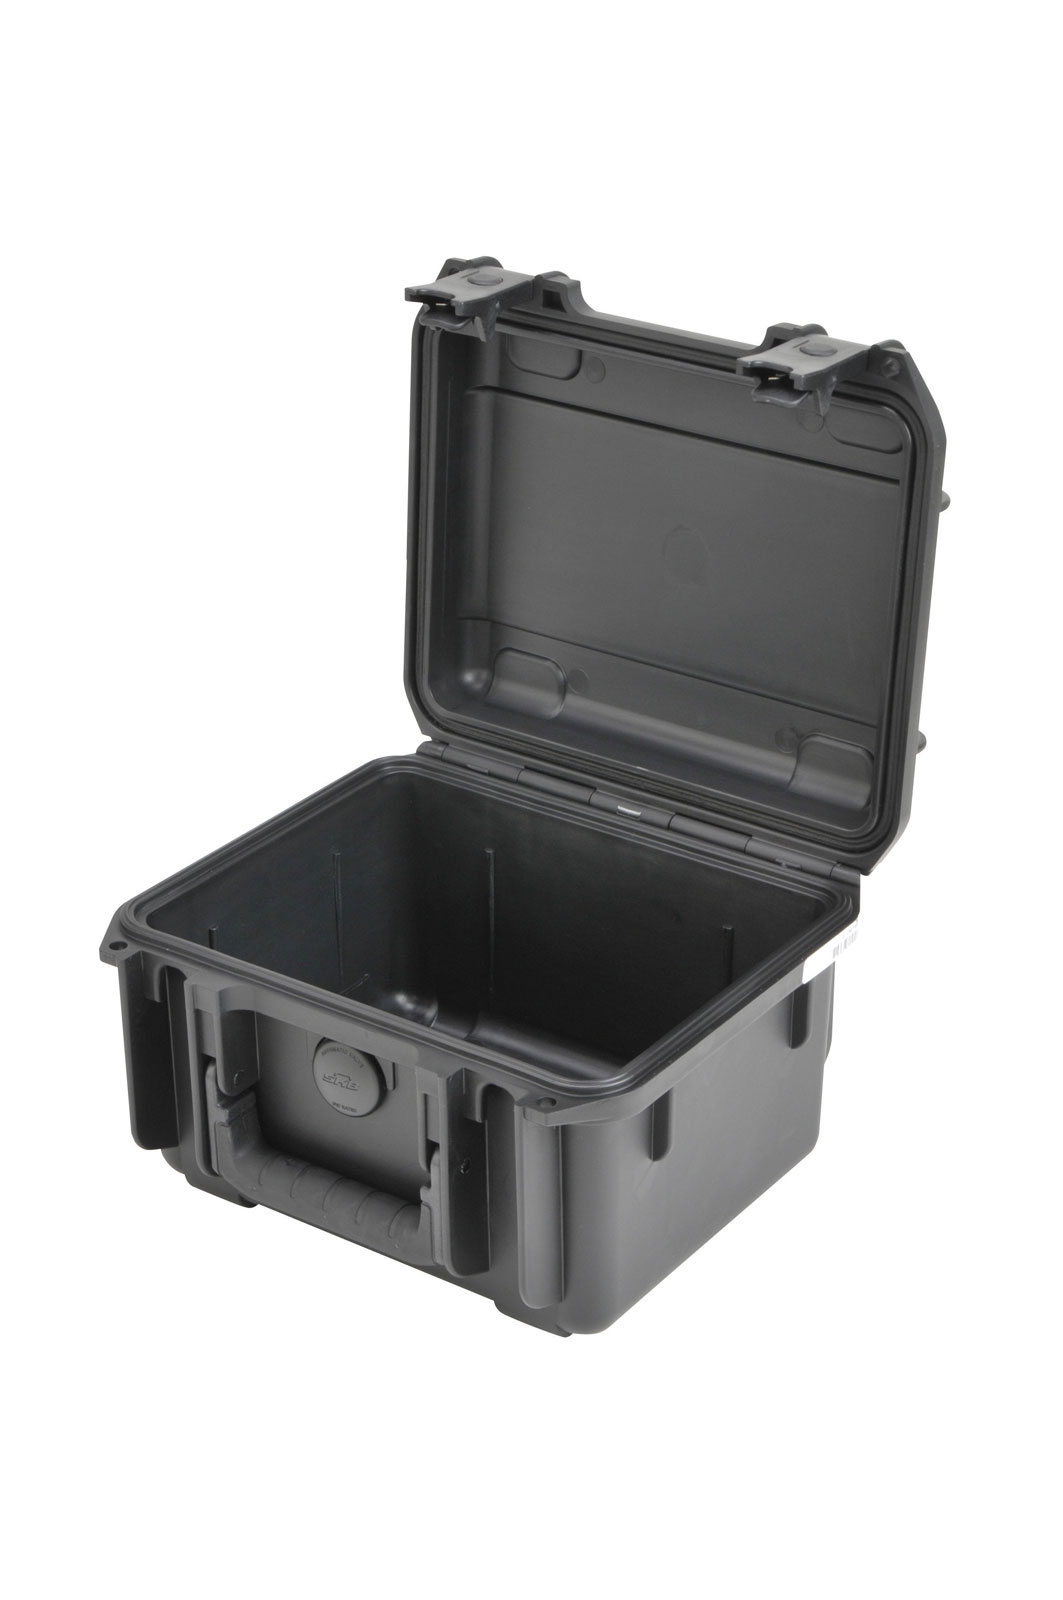 INDUSTRIAL SINGLE LID CASES 3I SERIES 3I-0907-6B-E BLACK